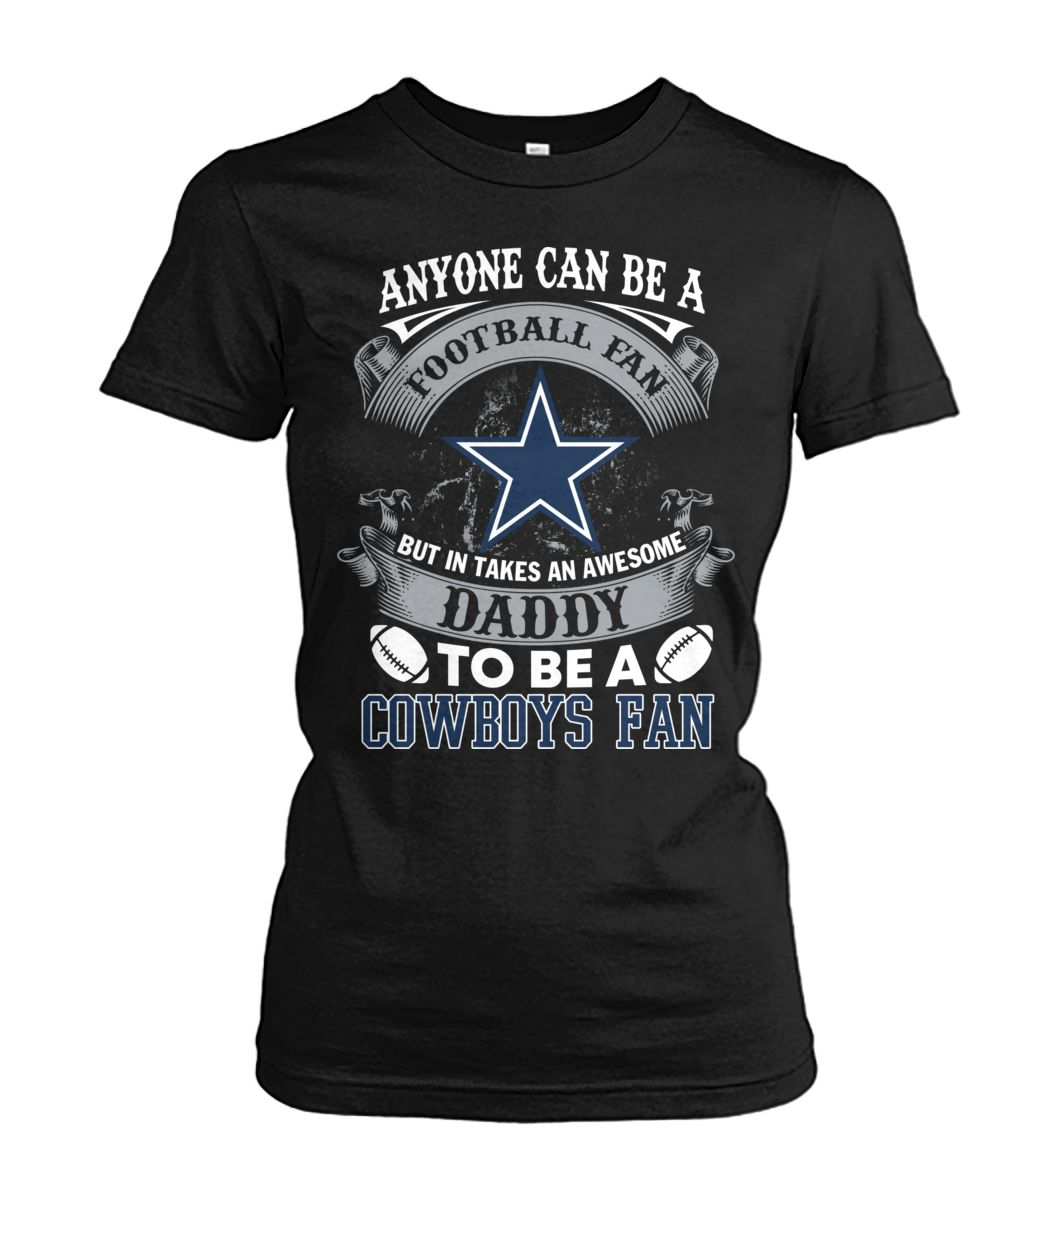 Anyone can be a football fan but in take an awesome daddy to be a dallas cowboys fan women's crew tee